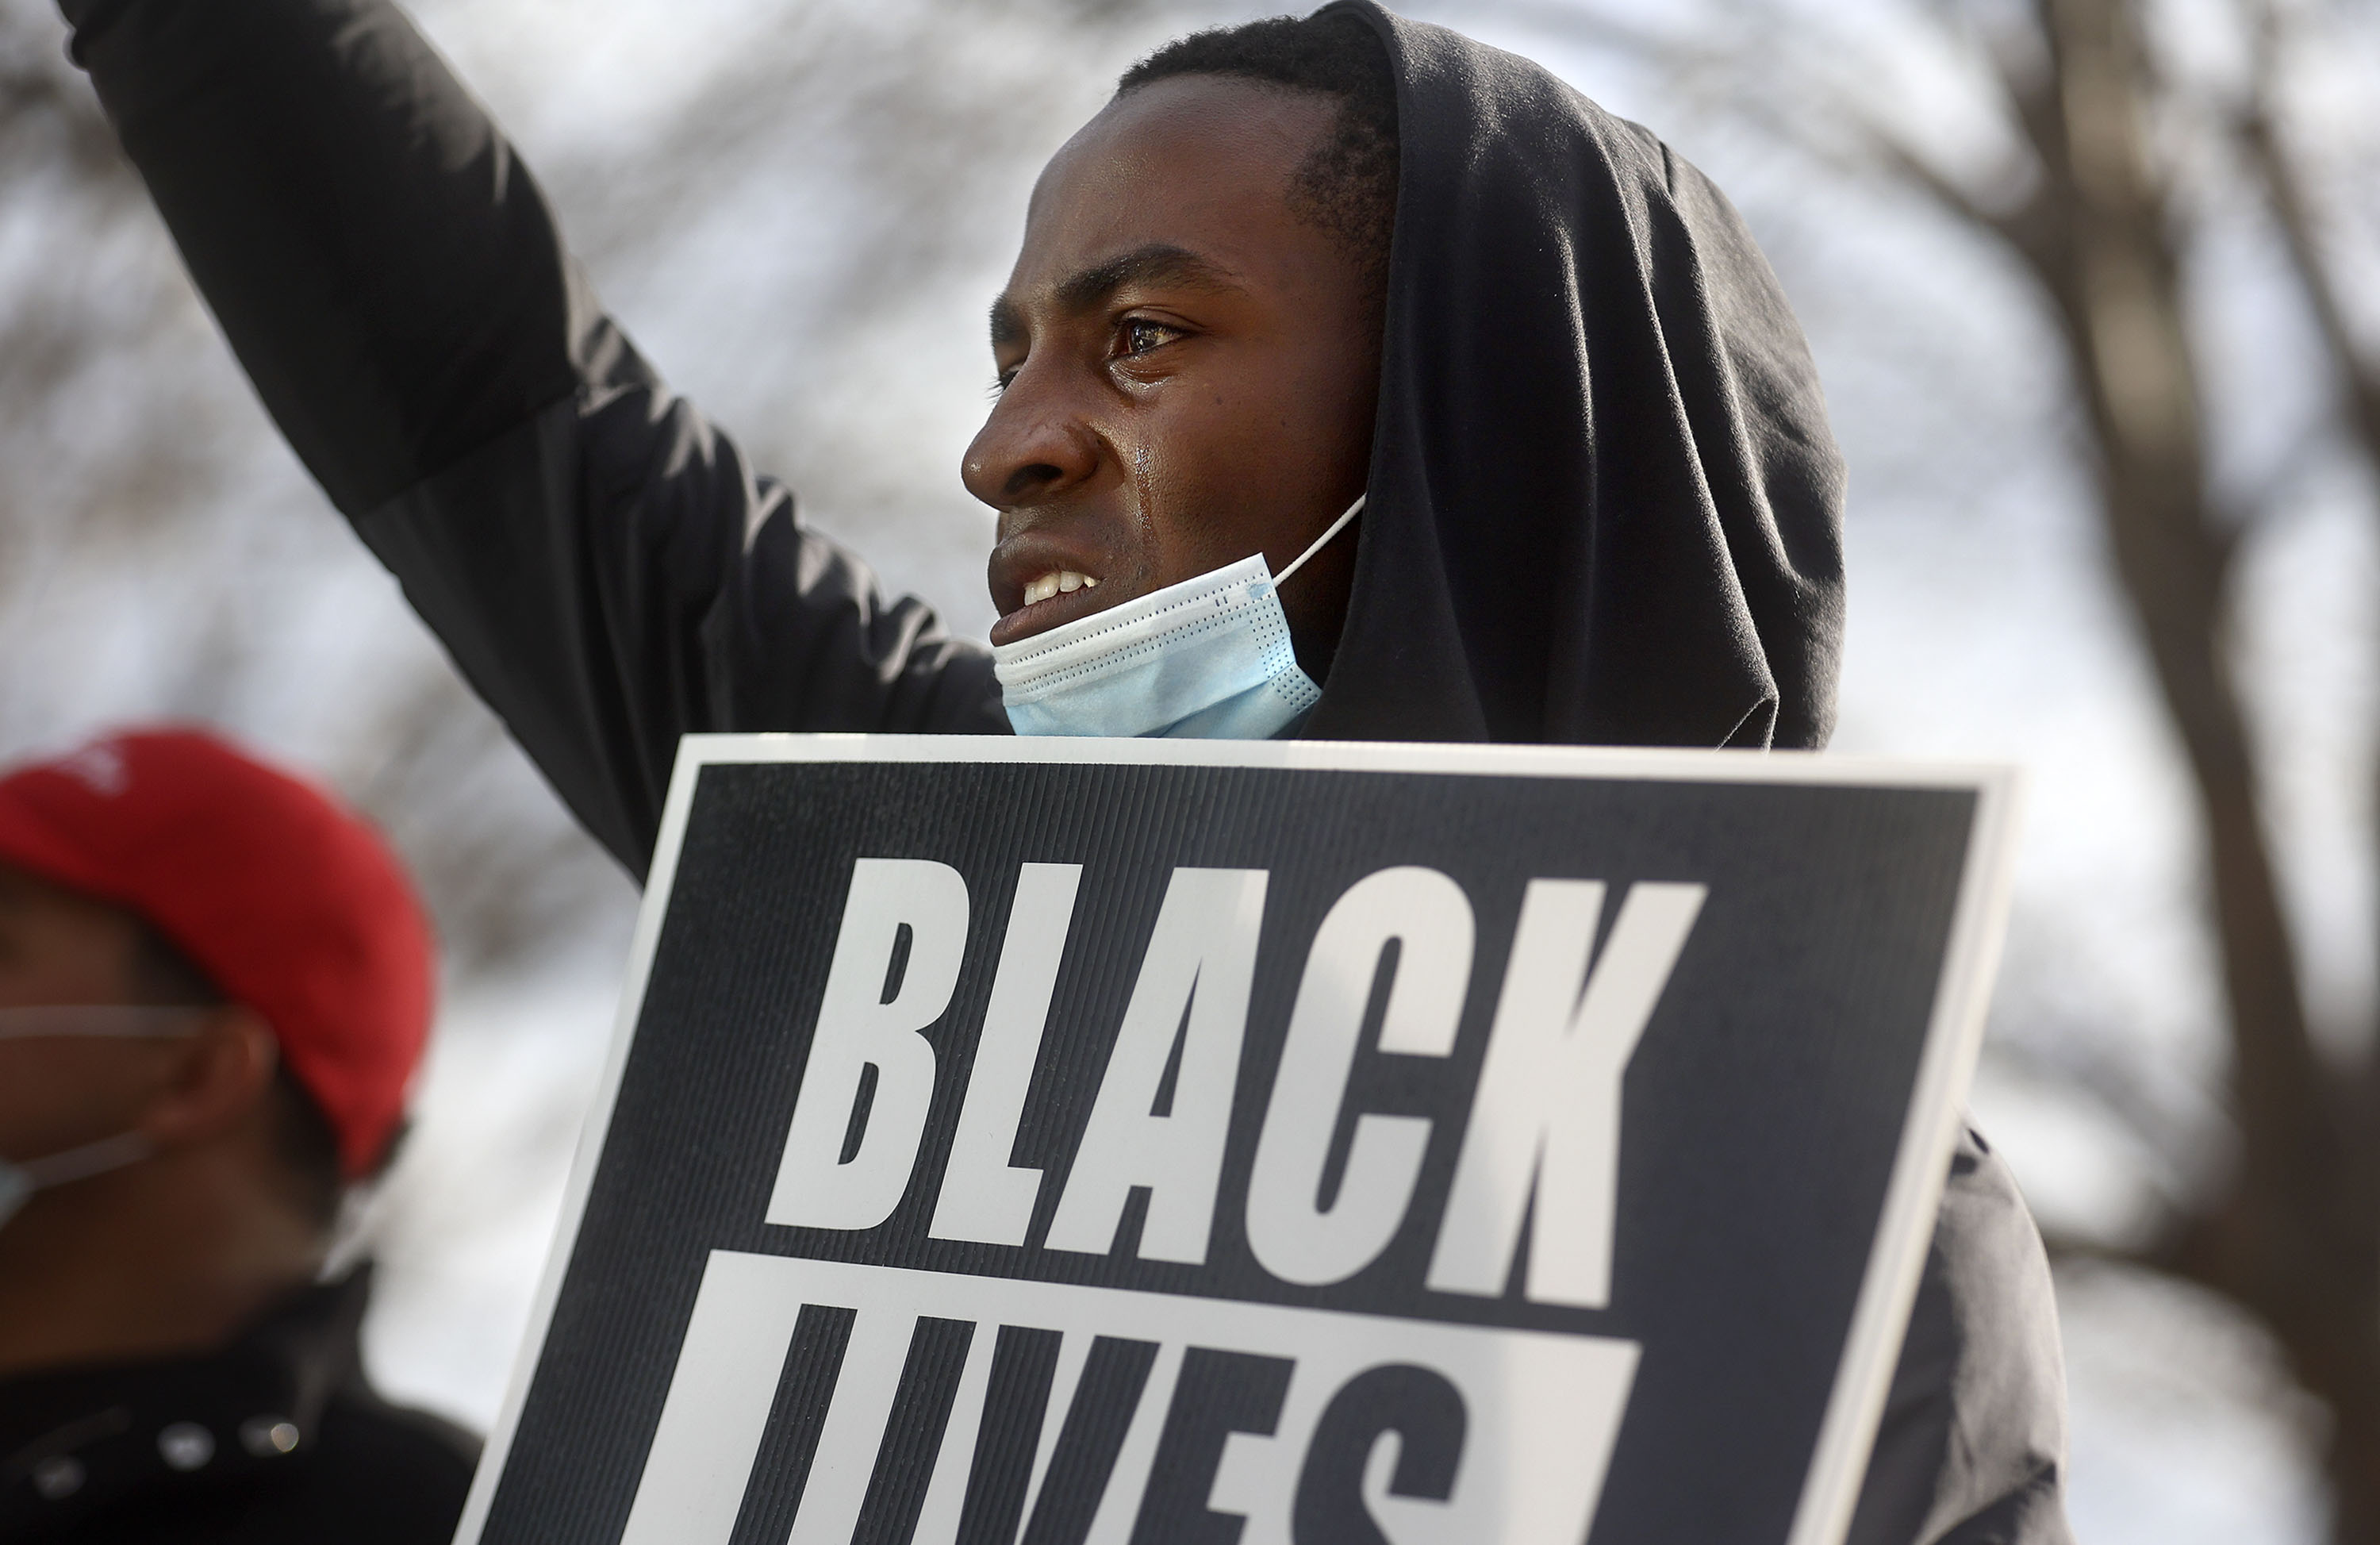 Tears run down Ben Chamberlain's cheeks as he listens to a speaker during a Black Lives Matter protest in front of the Salt Lake City Public Safety Building in Salt Lake City on Friday, April 16, 2021.